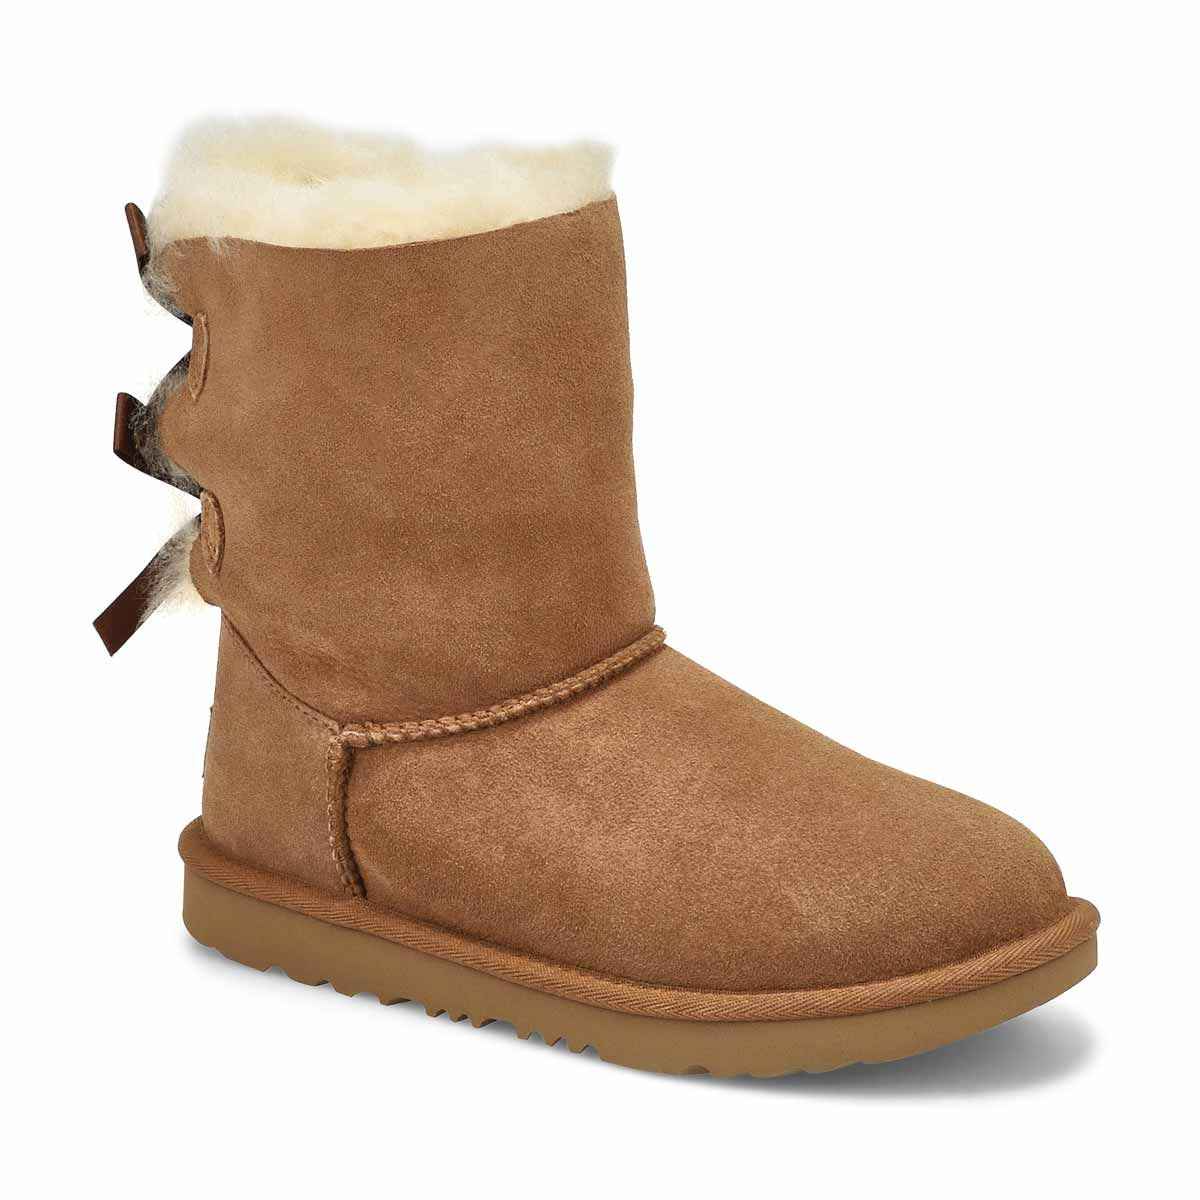 Grls Bailey Bow II ches sheepskin boot